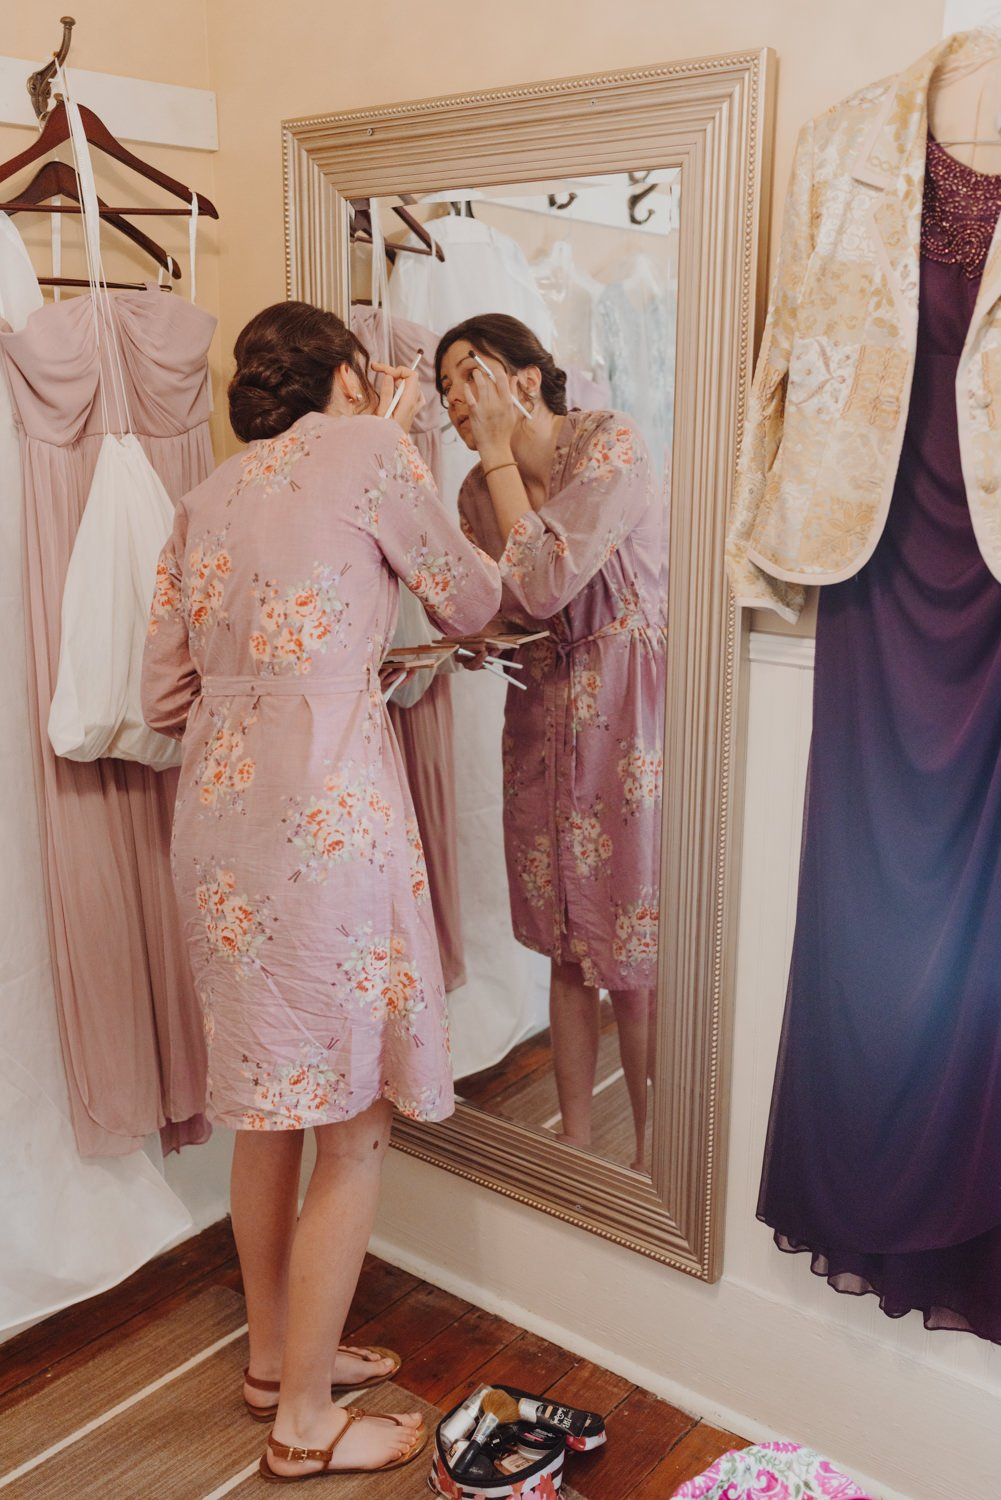 Bridesmaid applying makeup before wedding ceremony